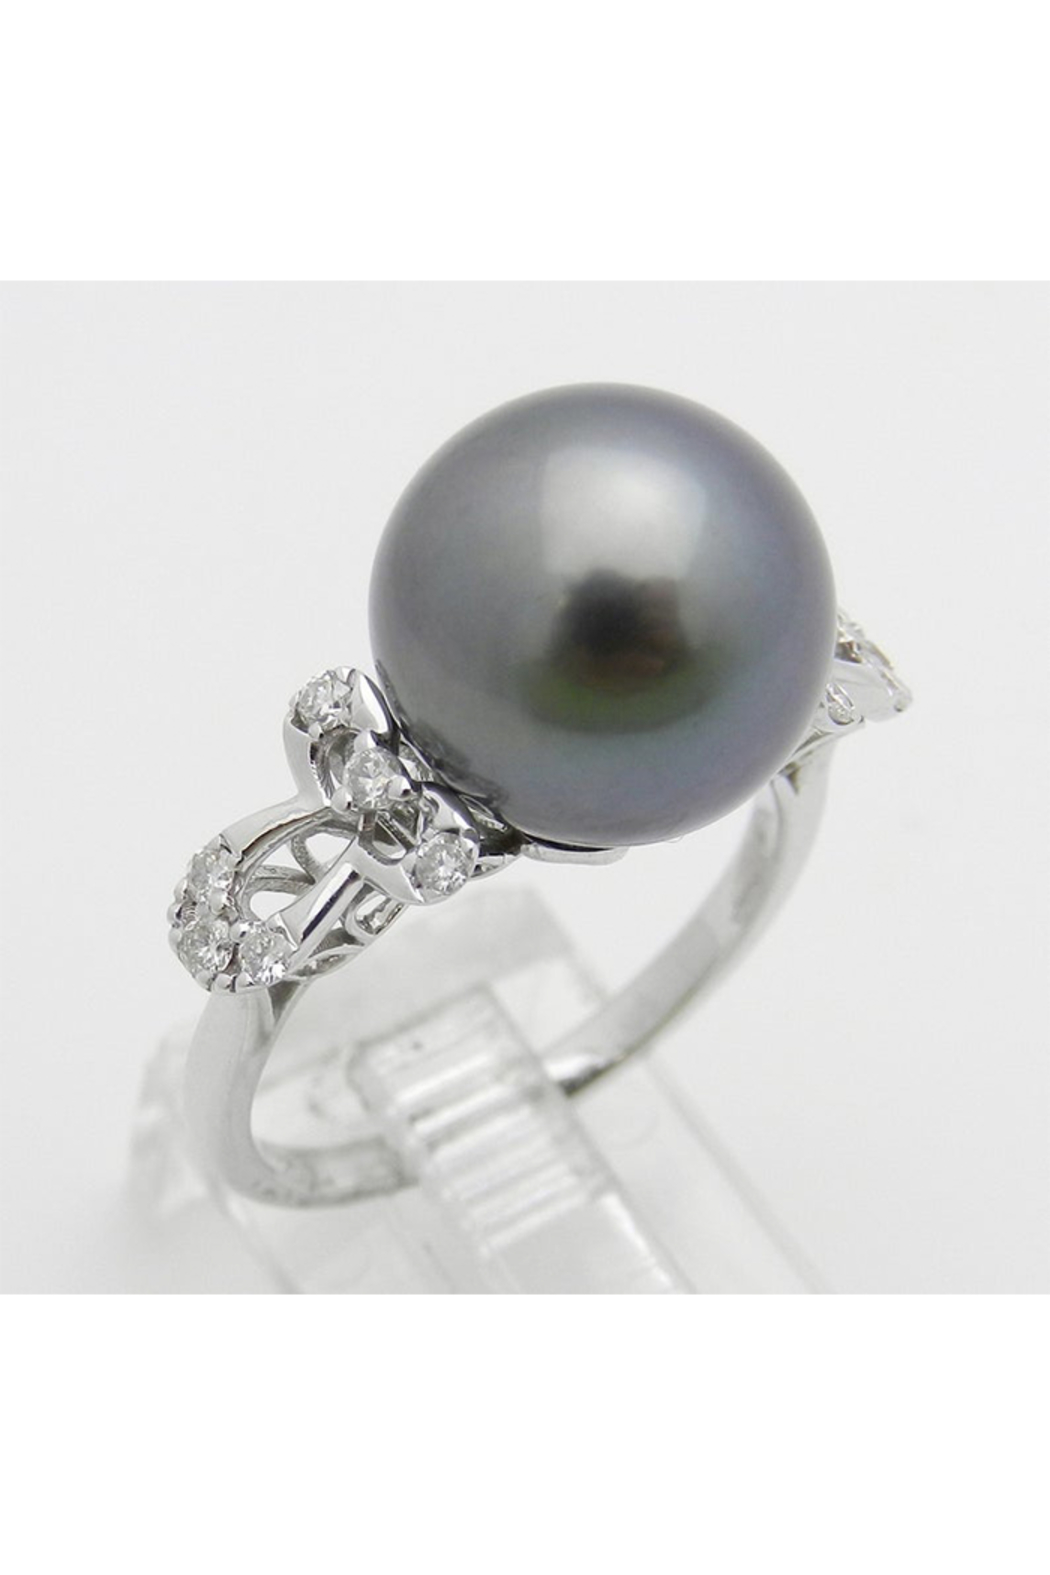 Margolin & Co 18K White Gold Diamond and Black Pearl Engagement Ring June Birthstone Size 6.5 FREE Sizing - Front Full Image